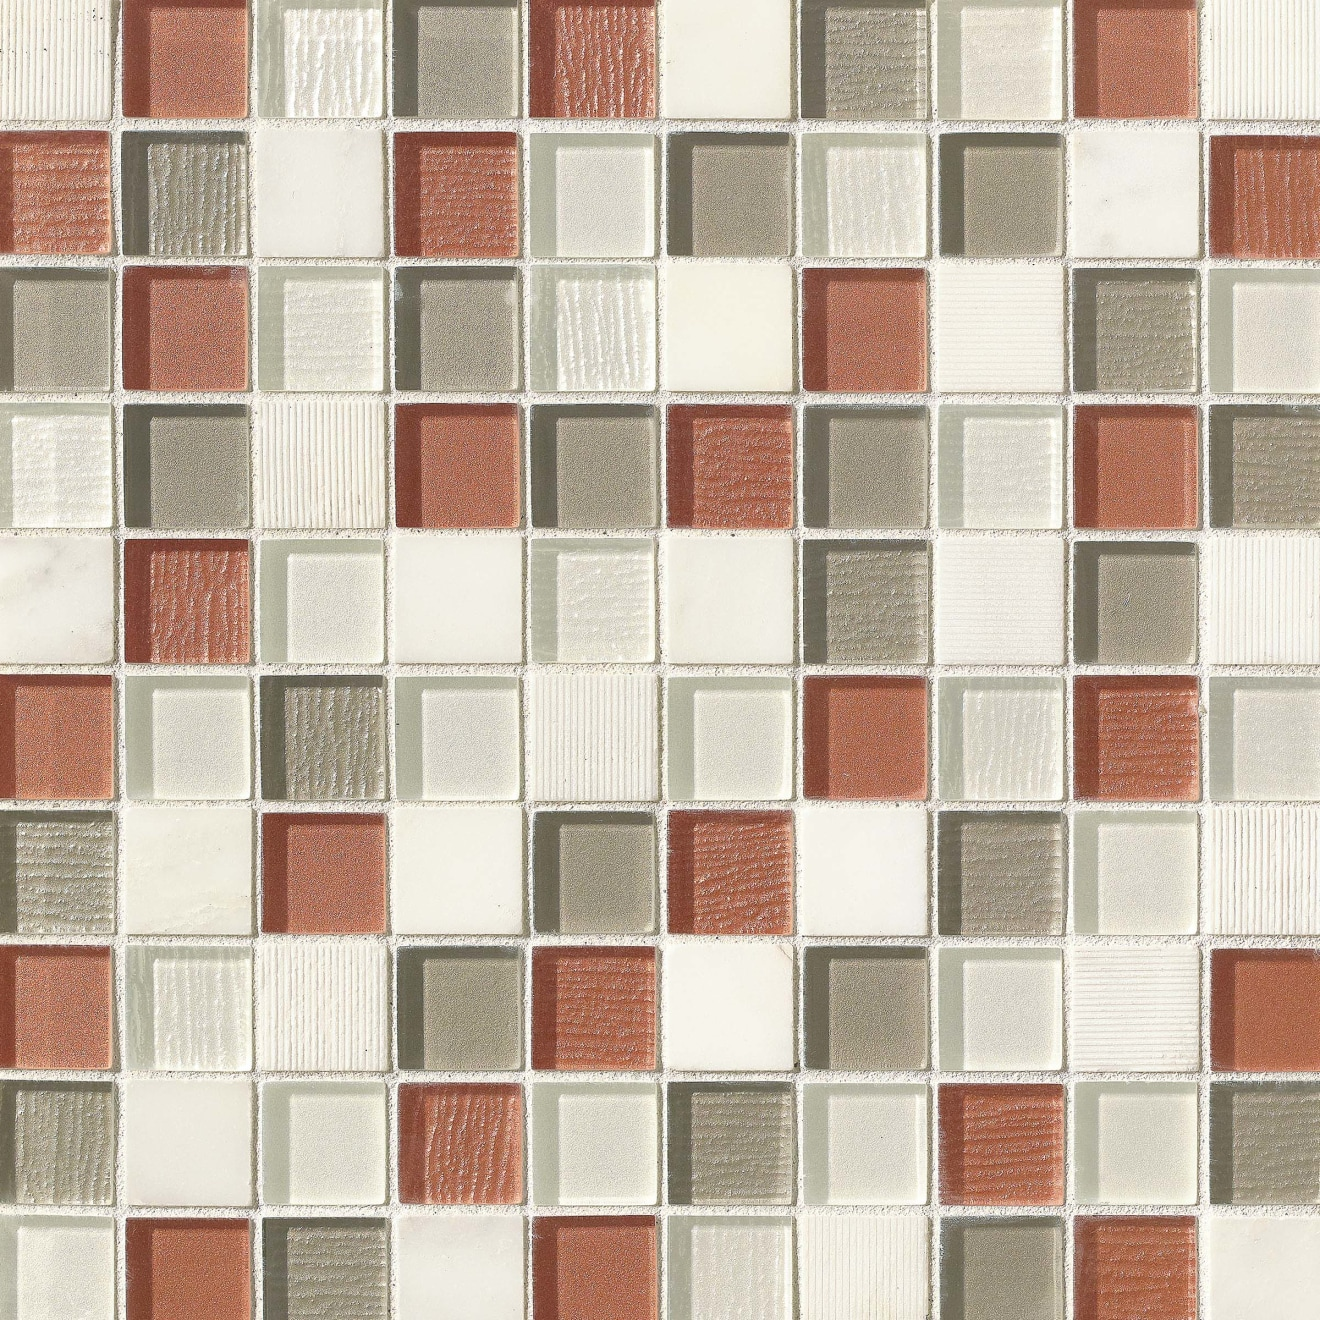 """Verve 1-1/8"""" x 1-1/8"""" Wall Mosaic in Knockout"""